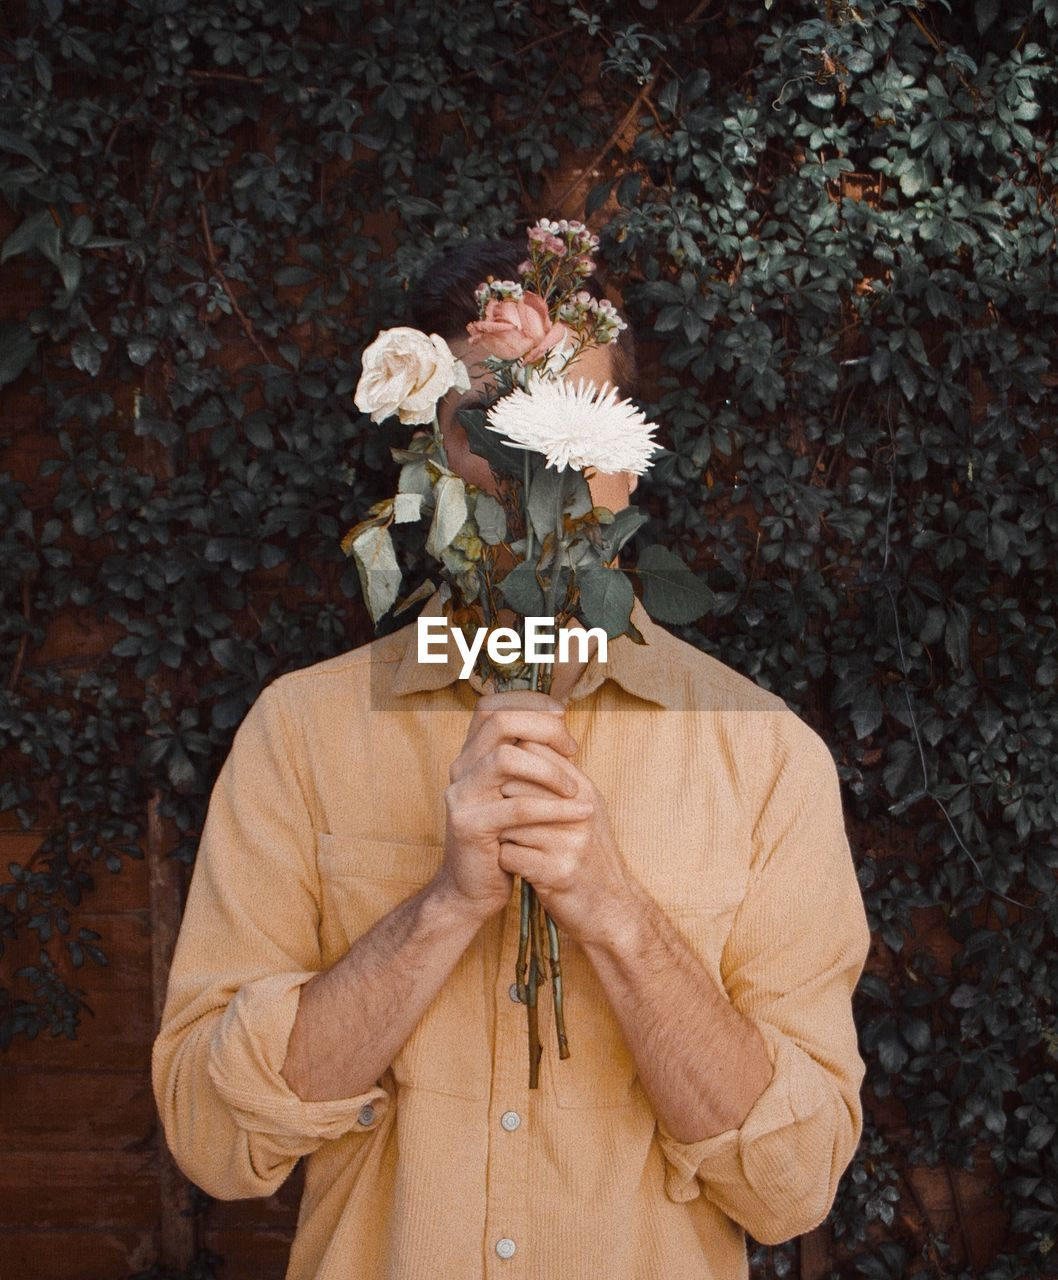 flower, flowering plant, plant, one person, holding, leaf, plant part, adult, nature, standing, obscured face, unrecognizable person, front view, beauty in nature, autumn, waist up, men, day, vulnerability, outdoors, contemplation, flower arrangement